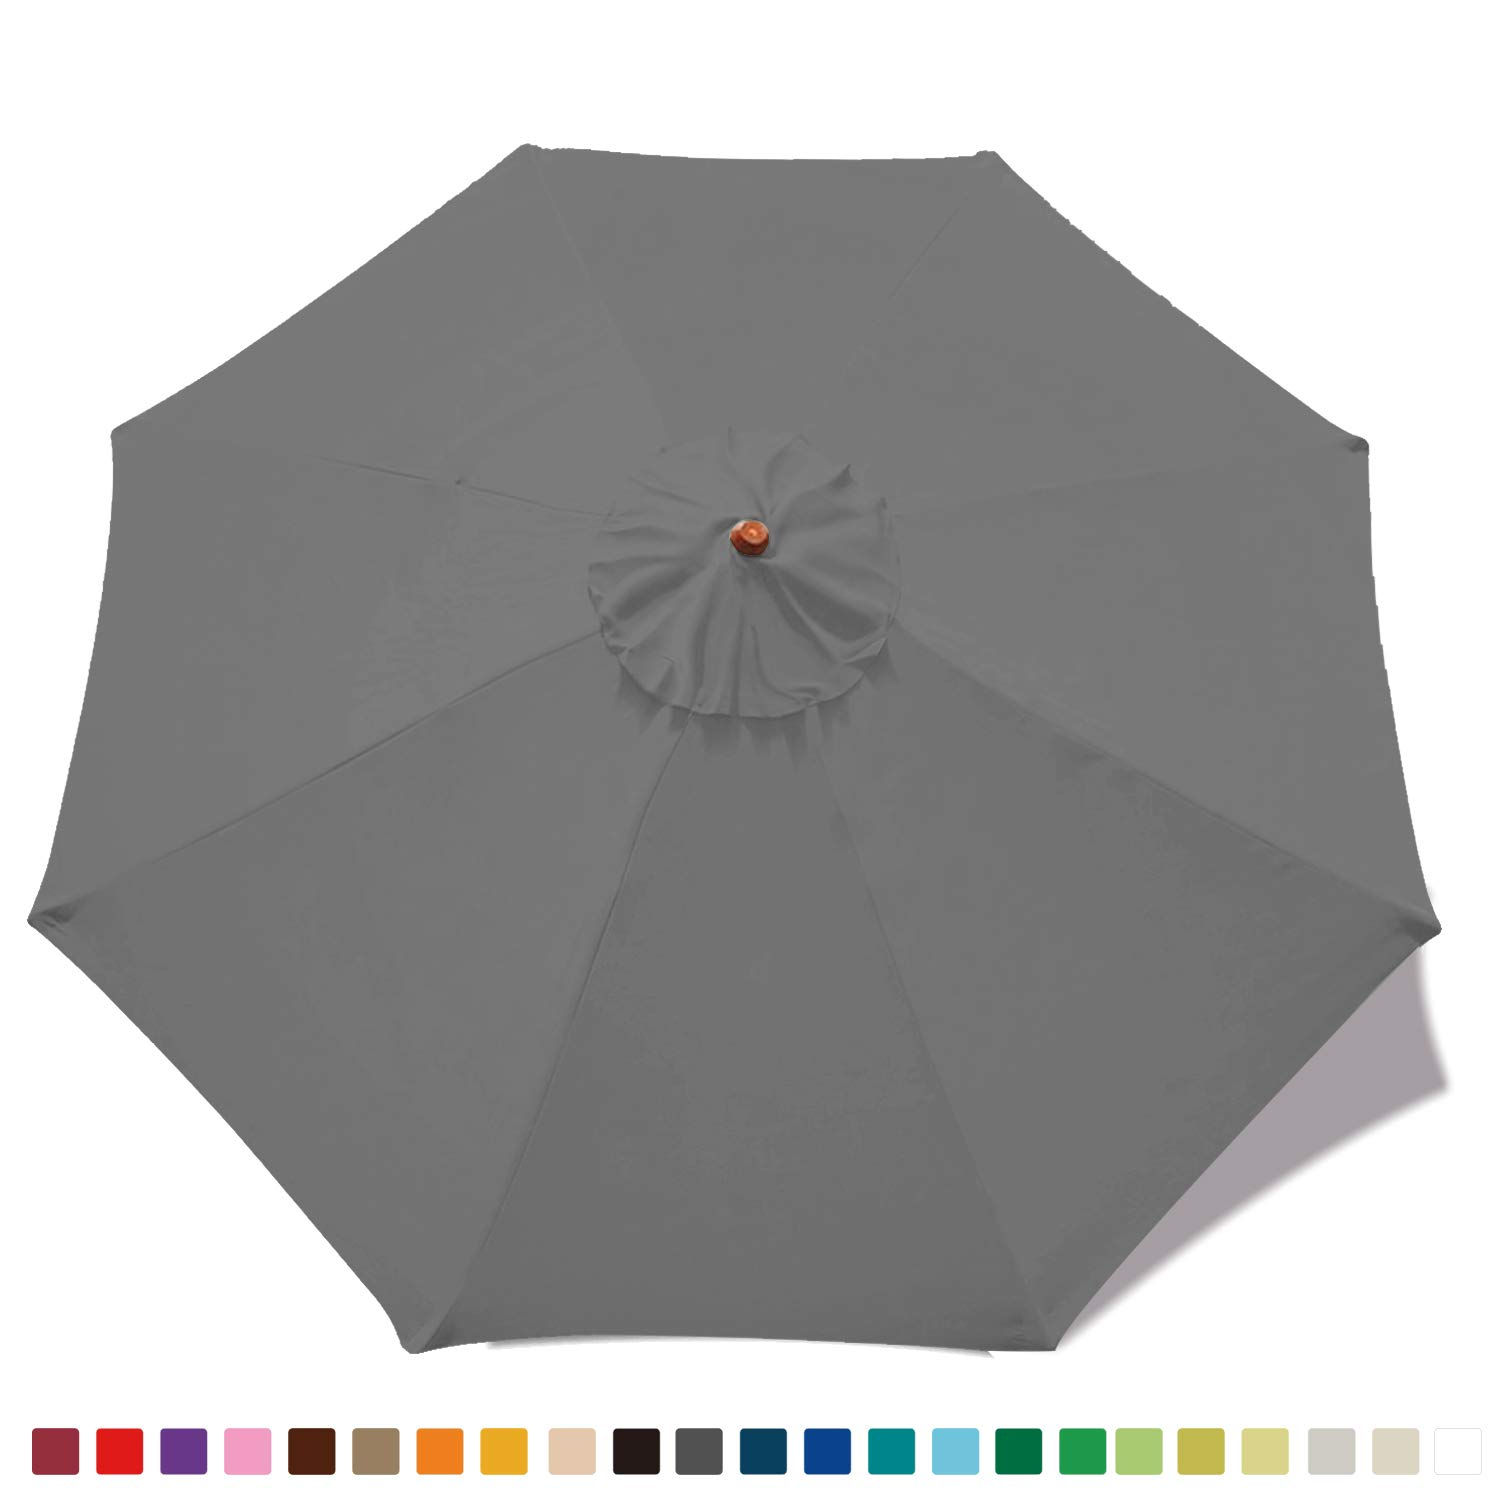 ABCCANOPY 9ft Outdoor Umbrella top for Patio Market Umbrella Replacement for Canopy with 8 Ribs Dark Gray